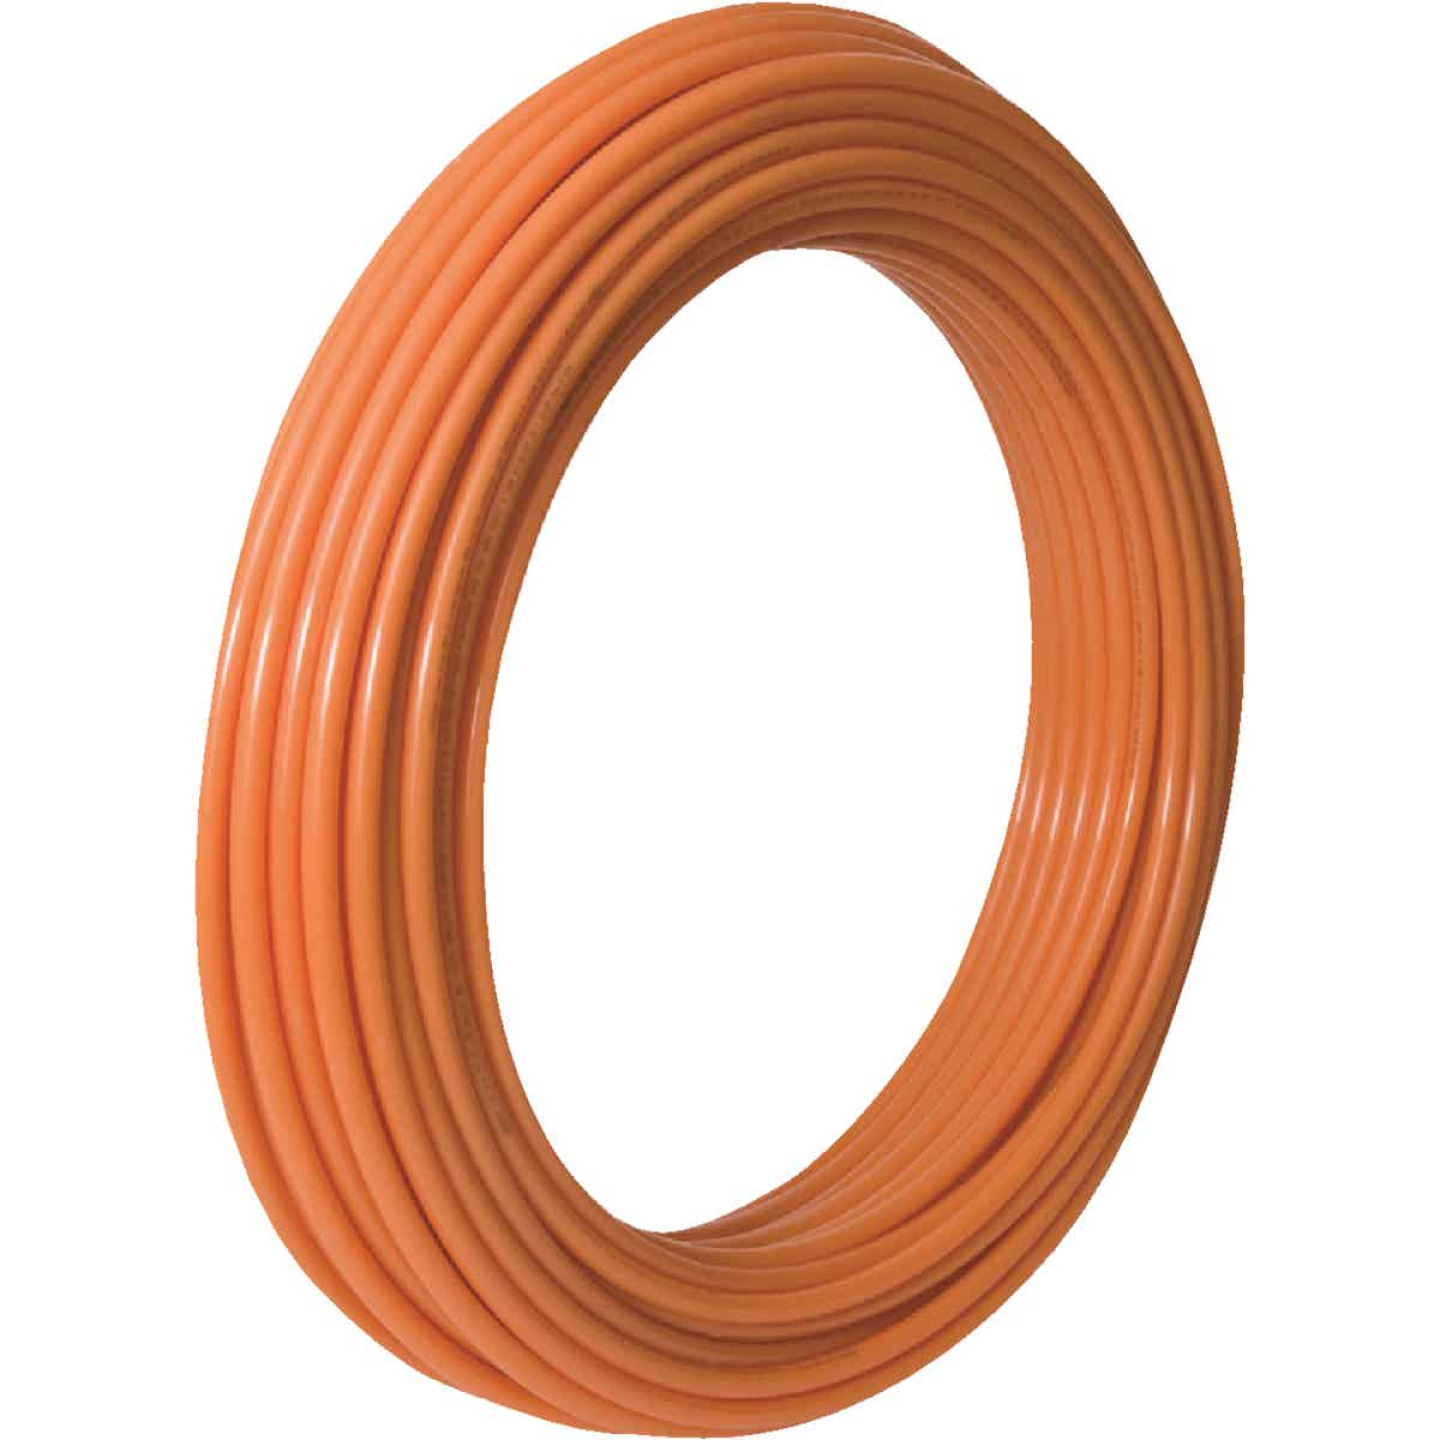 SharkBite 1/2 In. x 300 Ft. Orange Oxygen Barrier Radiant Heating PEX Pipe Type B Coil Image 1